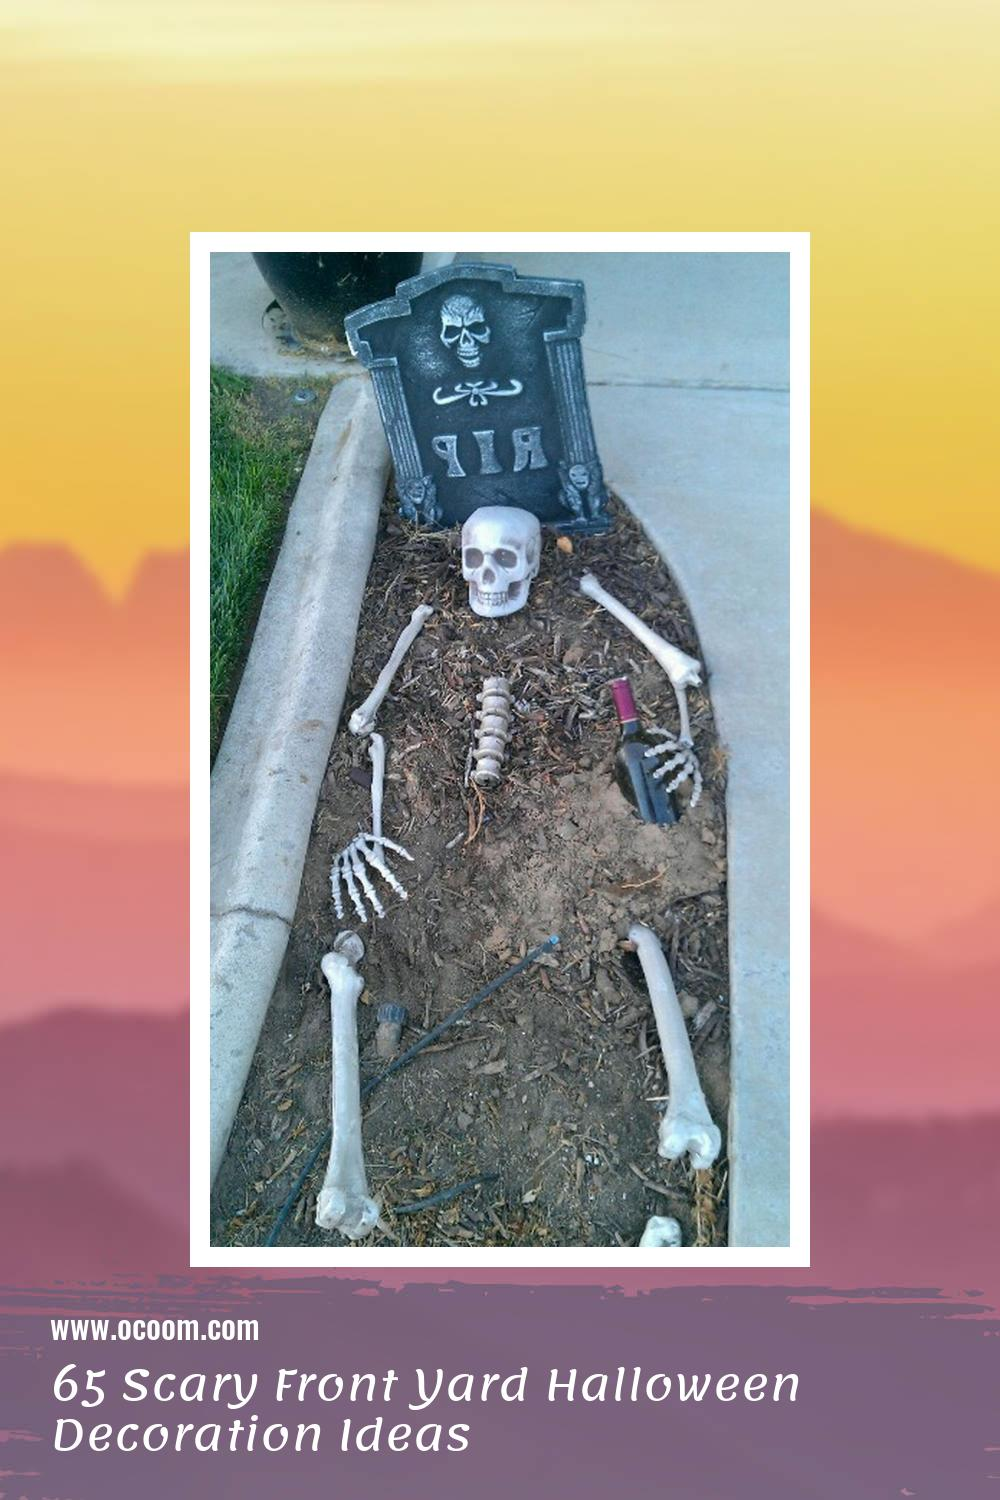 65 Scary Front Yard Halloween Decoration Ideas 26